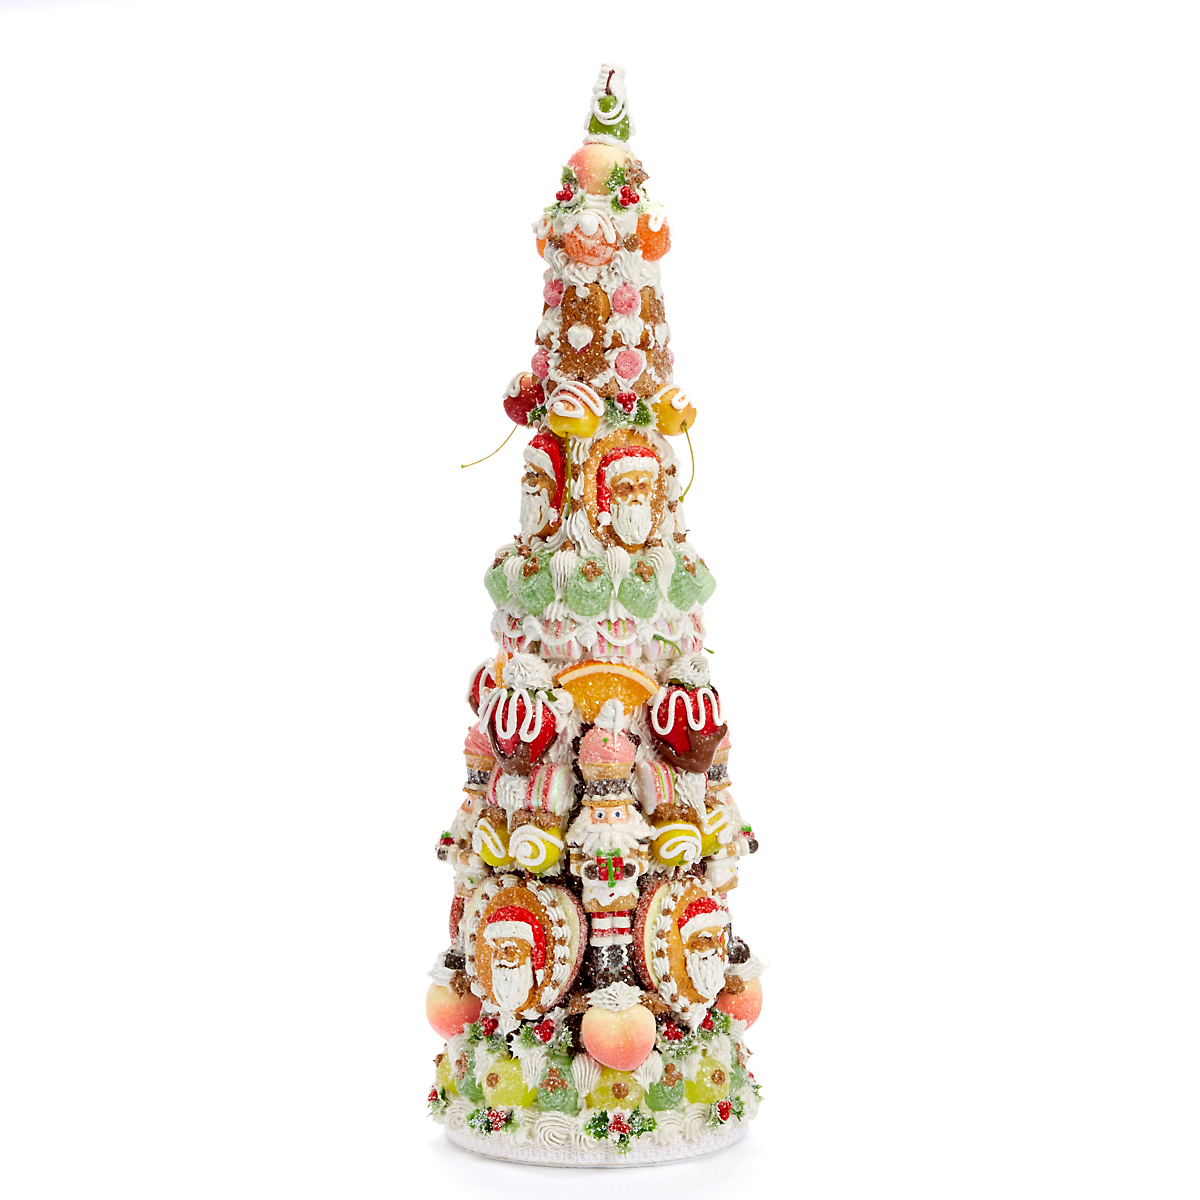 Medium candy tree centerpiece gump s